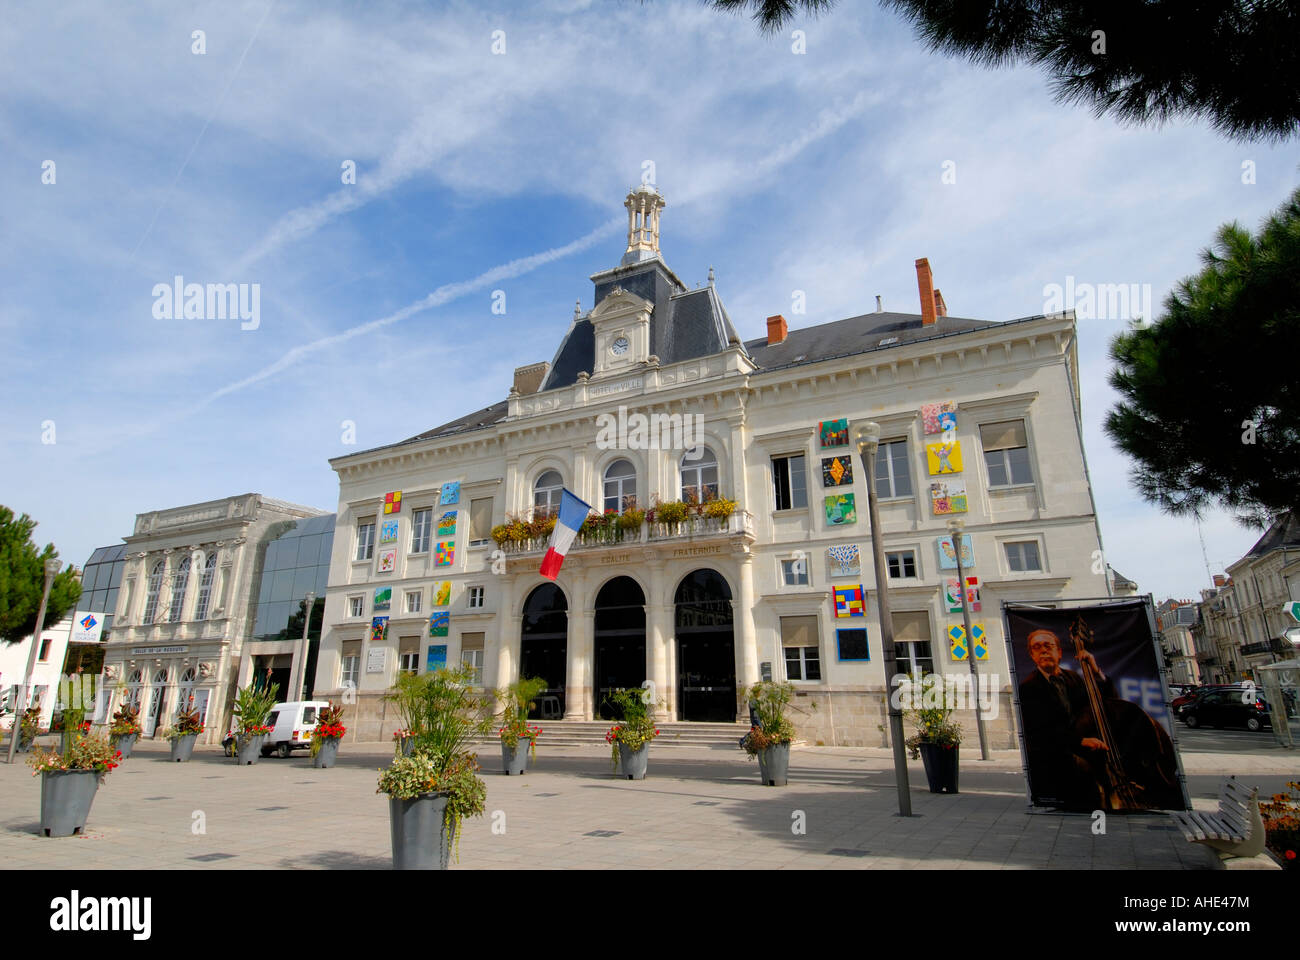 Hotel de ville town hall chatellerault vienne france for Appart hotel vienne france